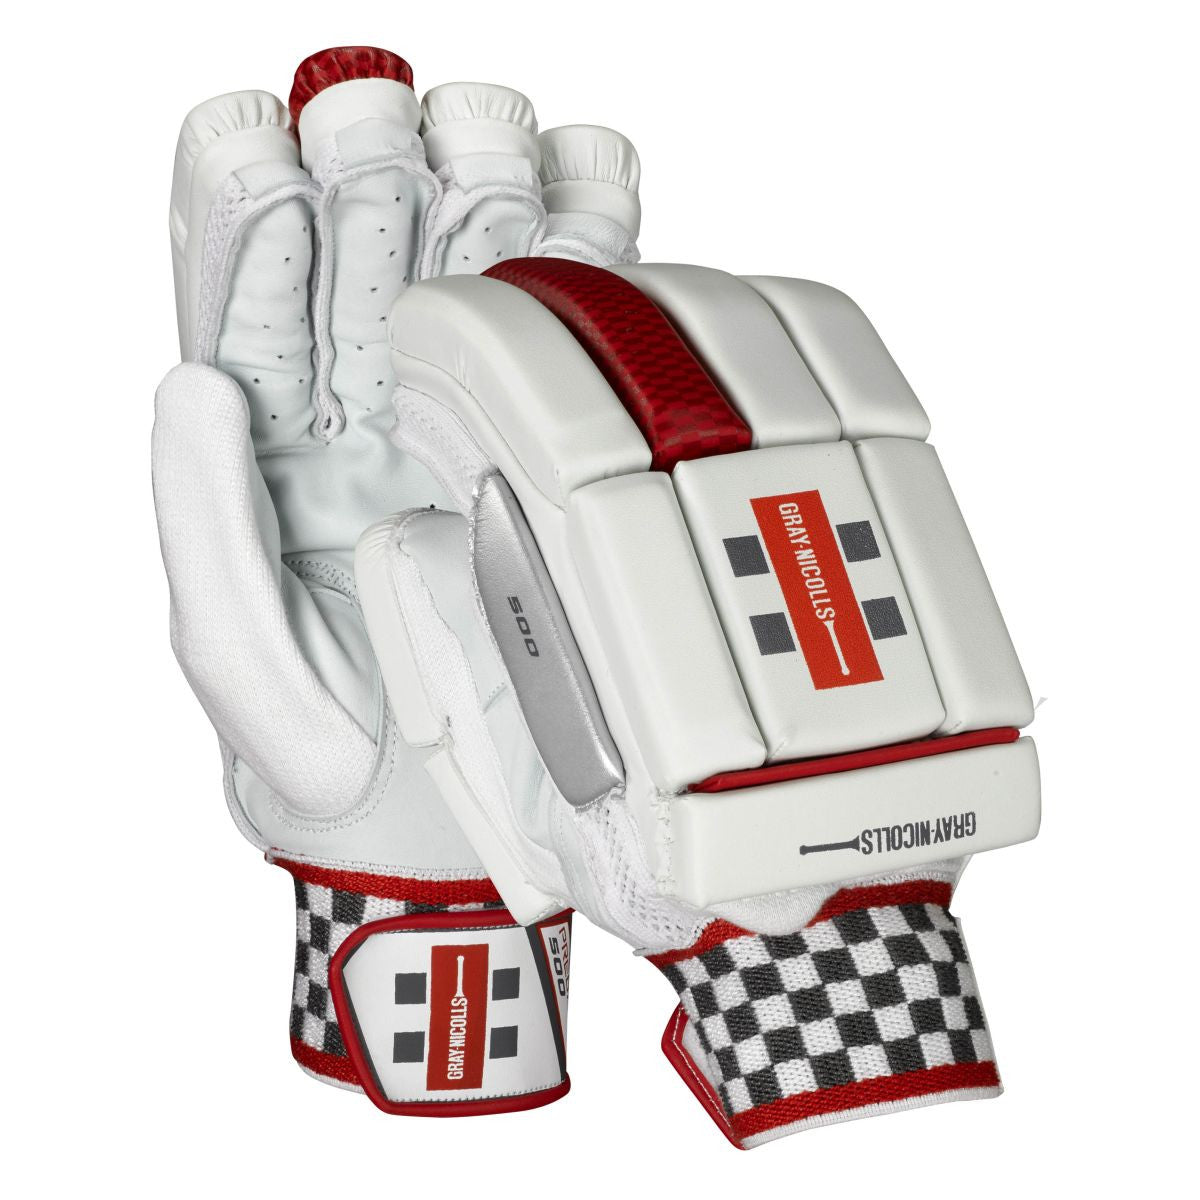 203b10cfc73 Gray-Nicolls Predator3 500 Batting Gloves – The Cricket Warehouse